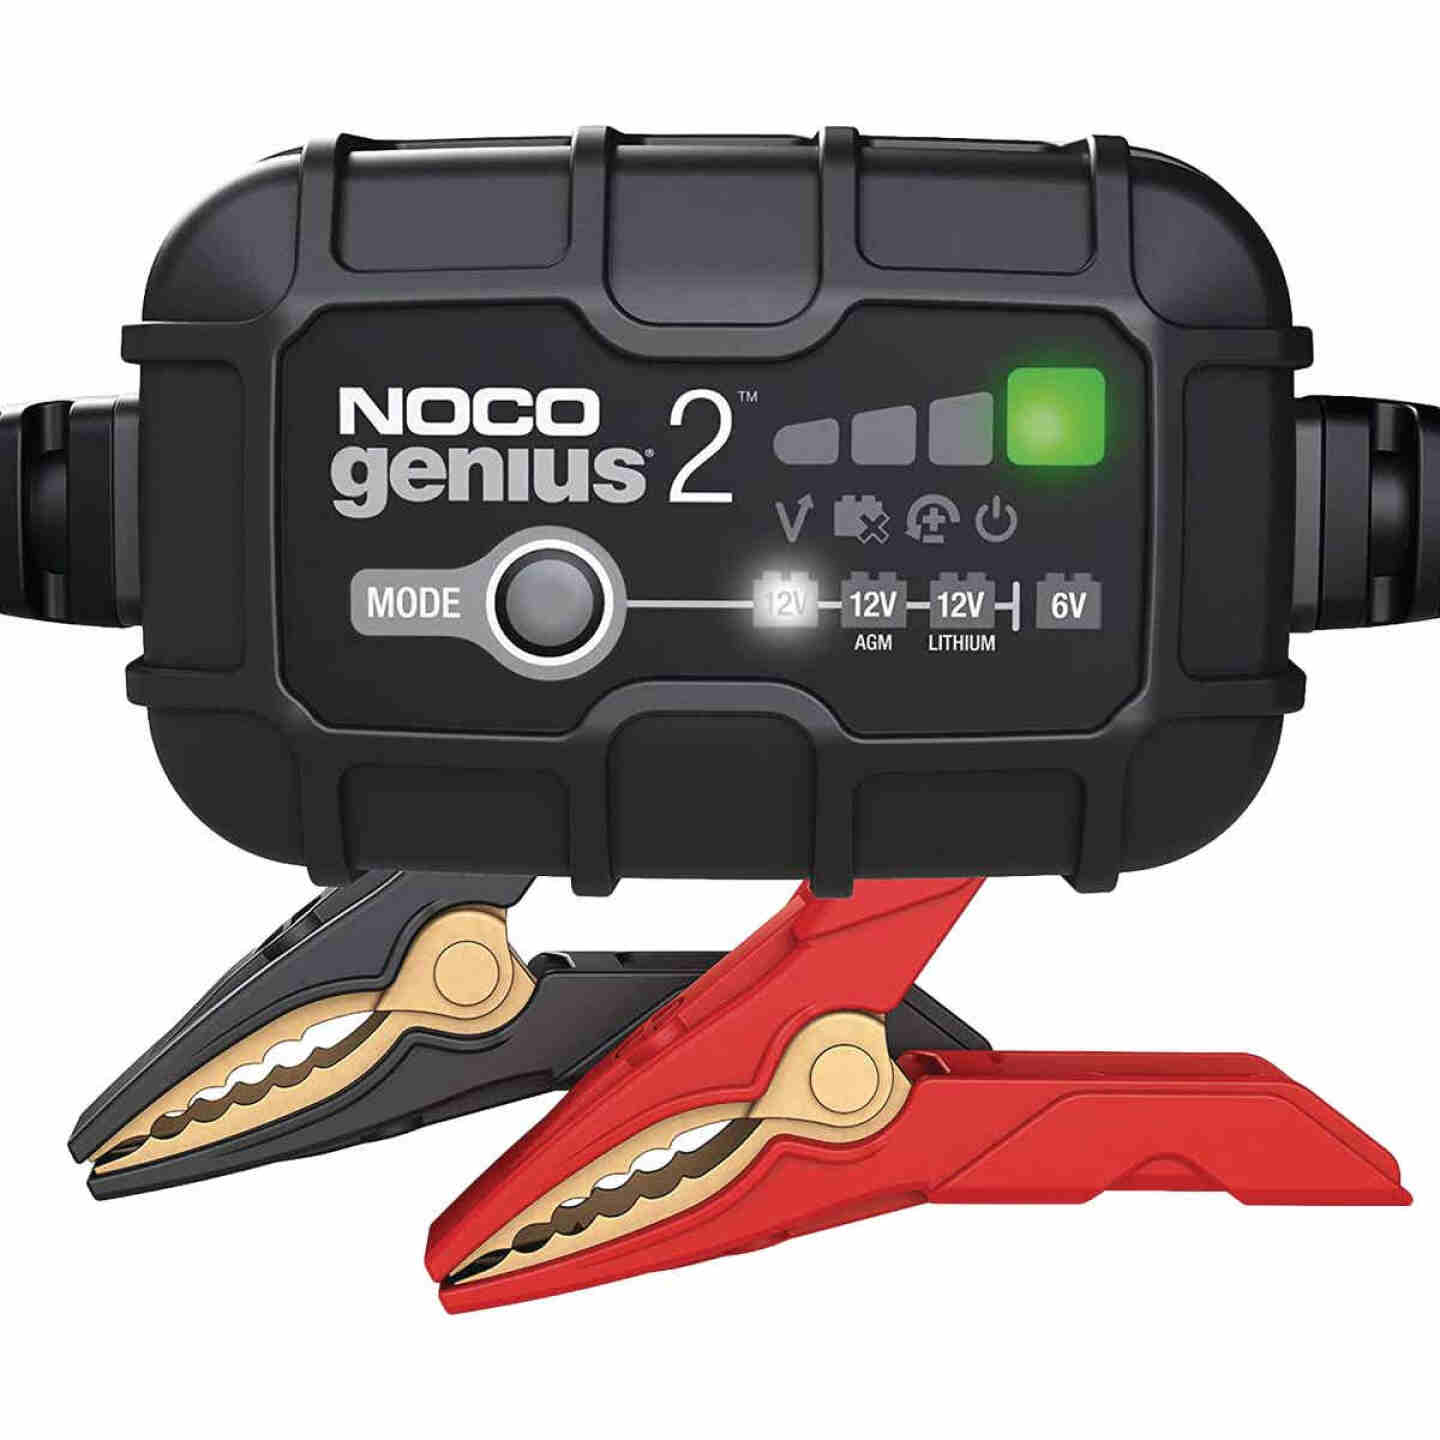 NOCO Genius 6V and 12V 2A Auto Battery Charger, Battery Maintainer, and Battery Desulfator Image 1